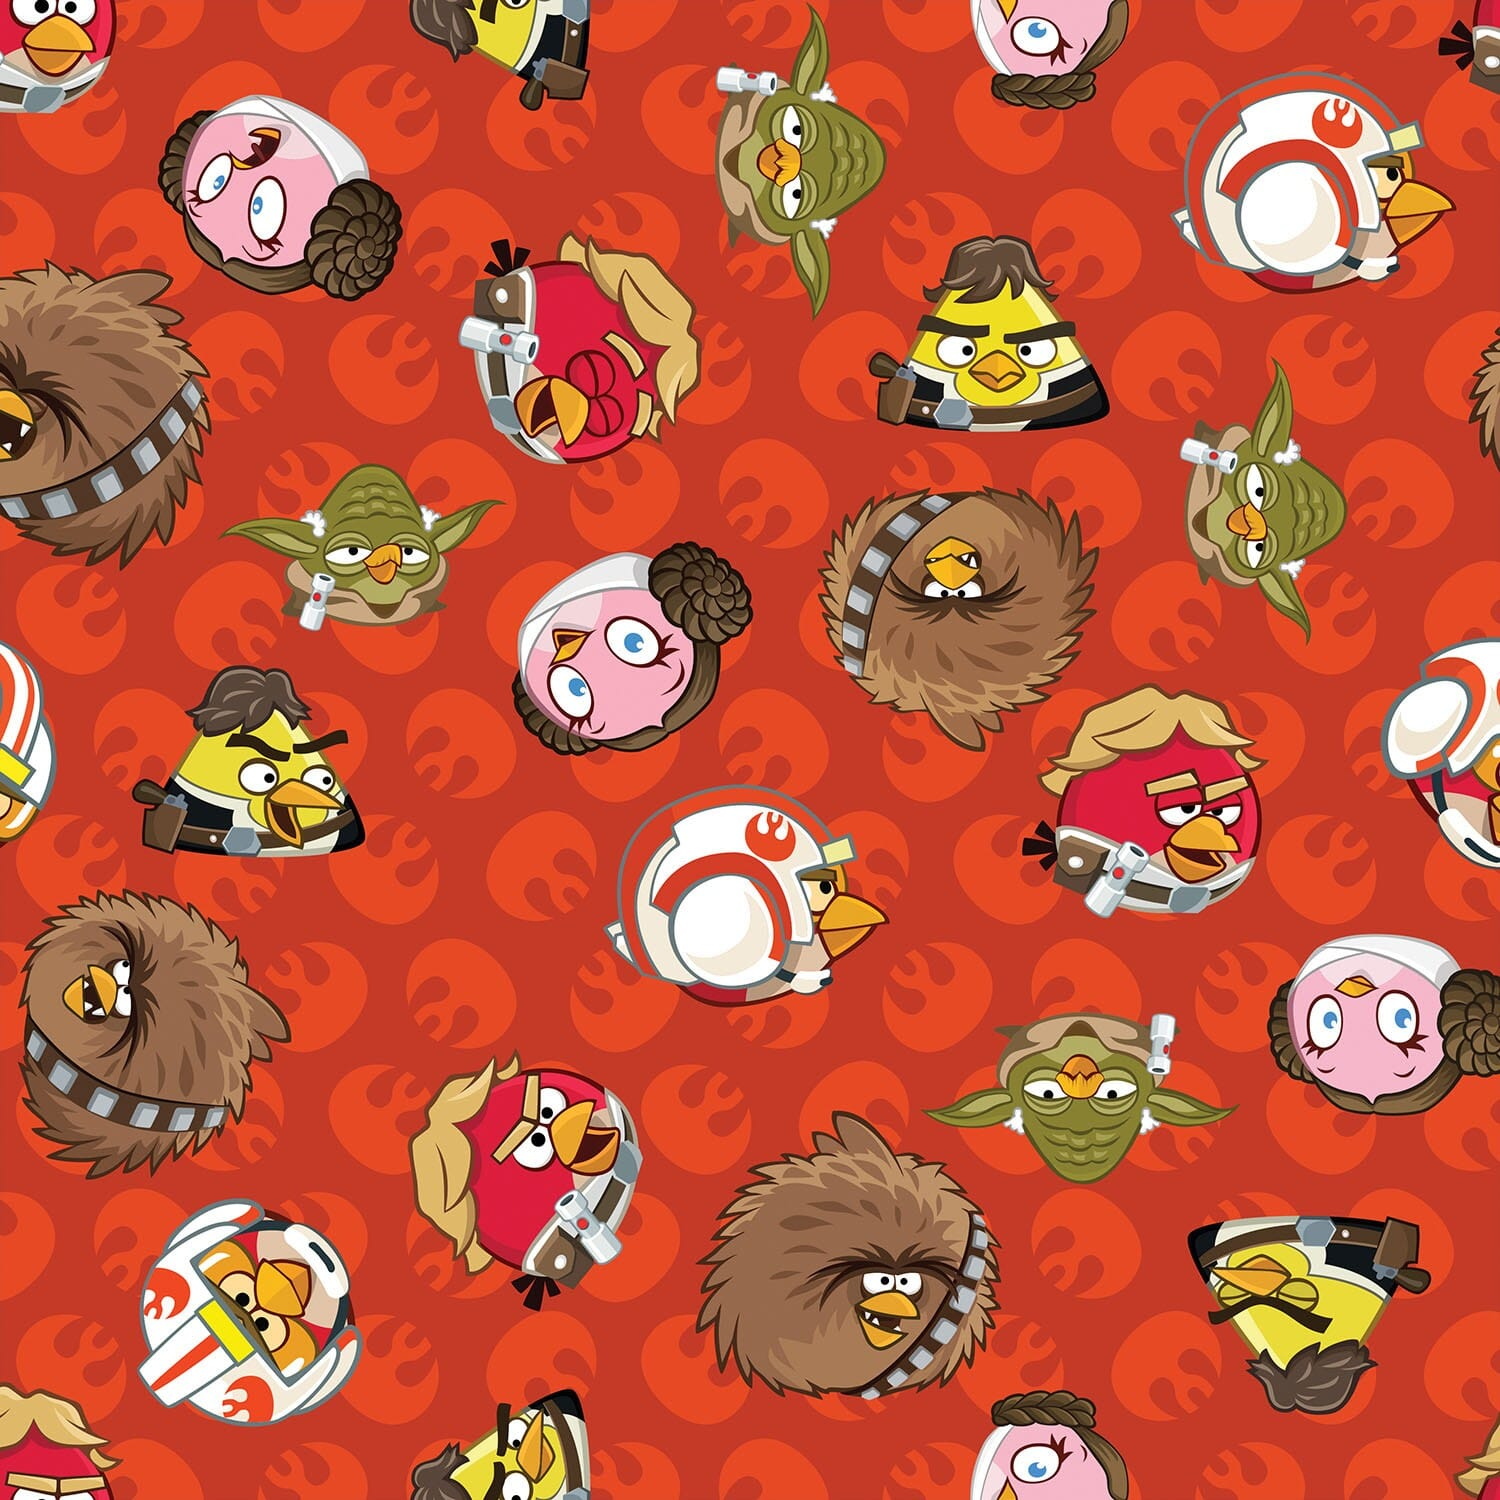 Patchwork Fabric Childrens Angry Birds Star Wars Fabric Rebel Leaders Red